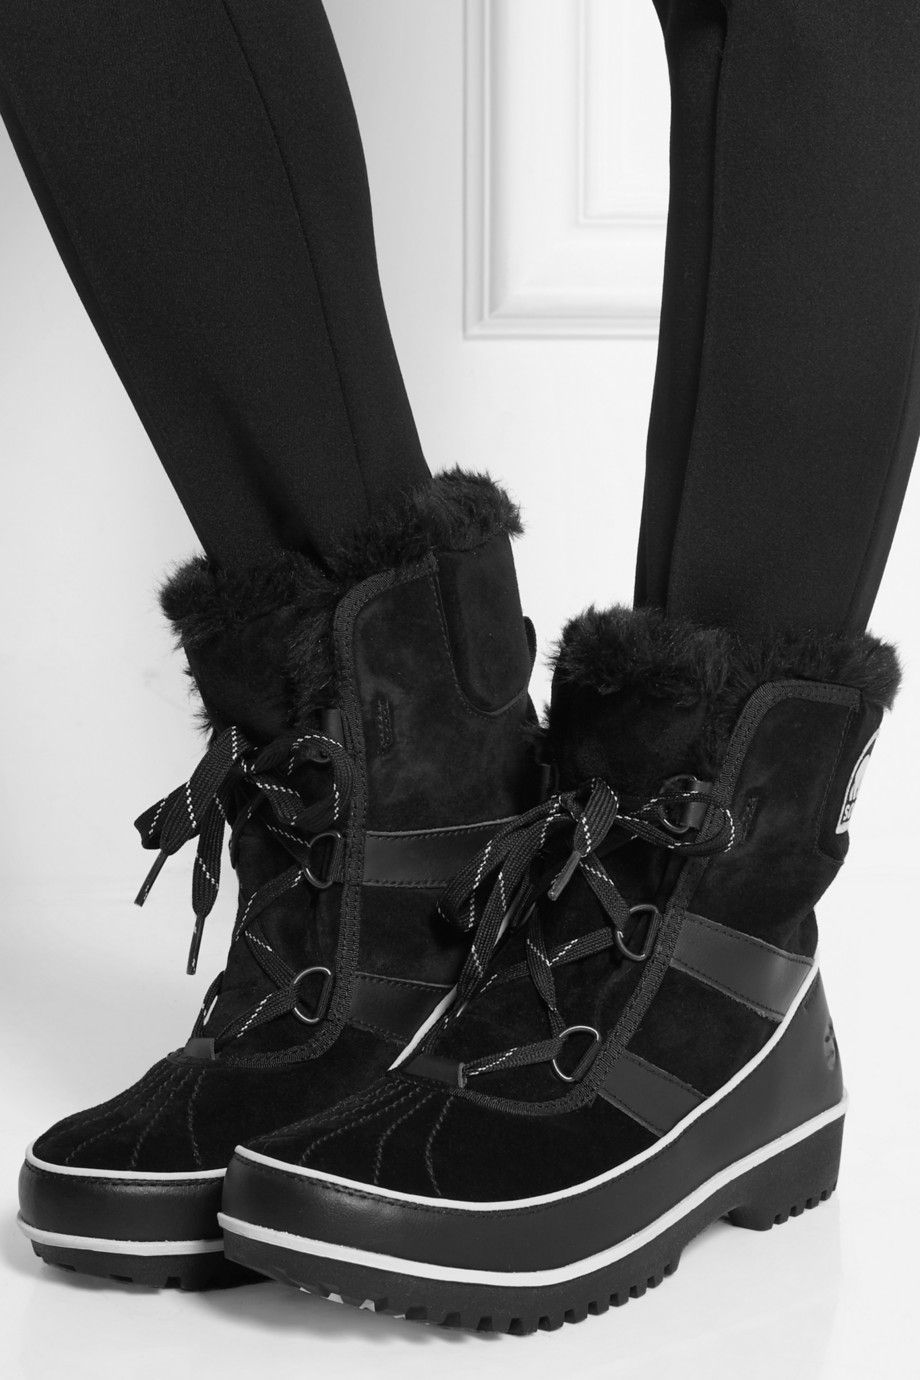 Sorel boots outfit, Boots, Winter boots